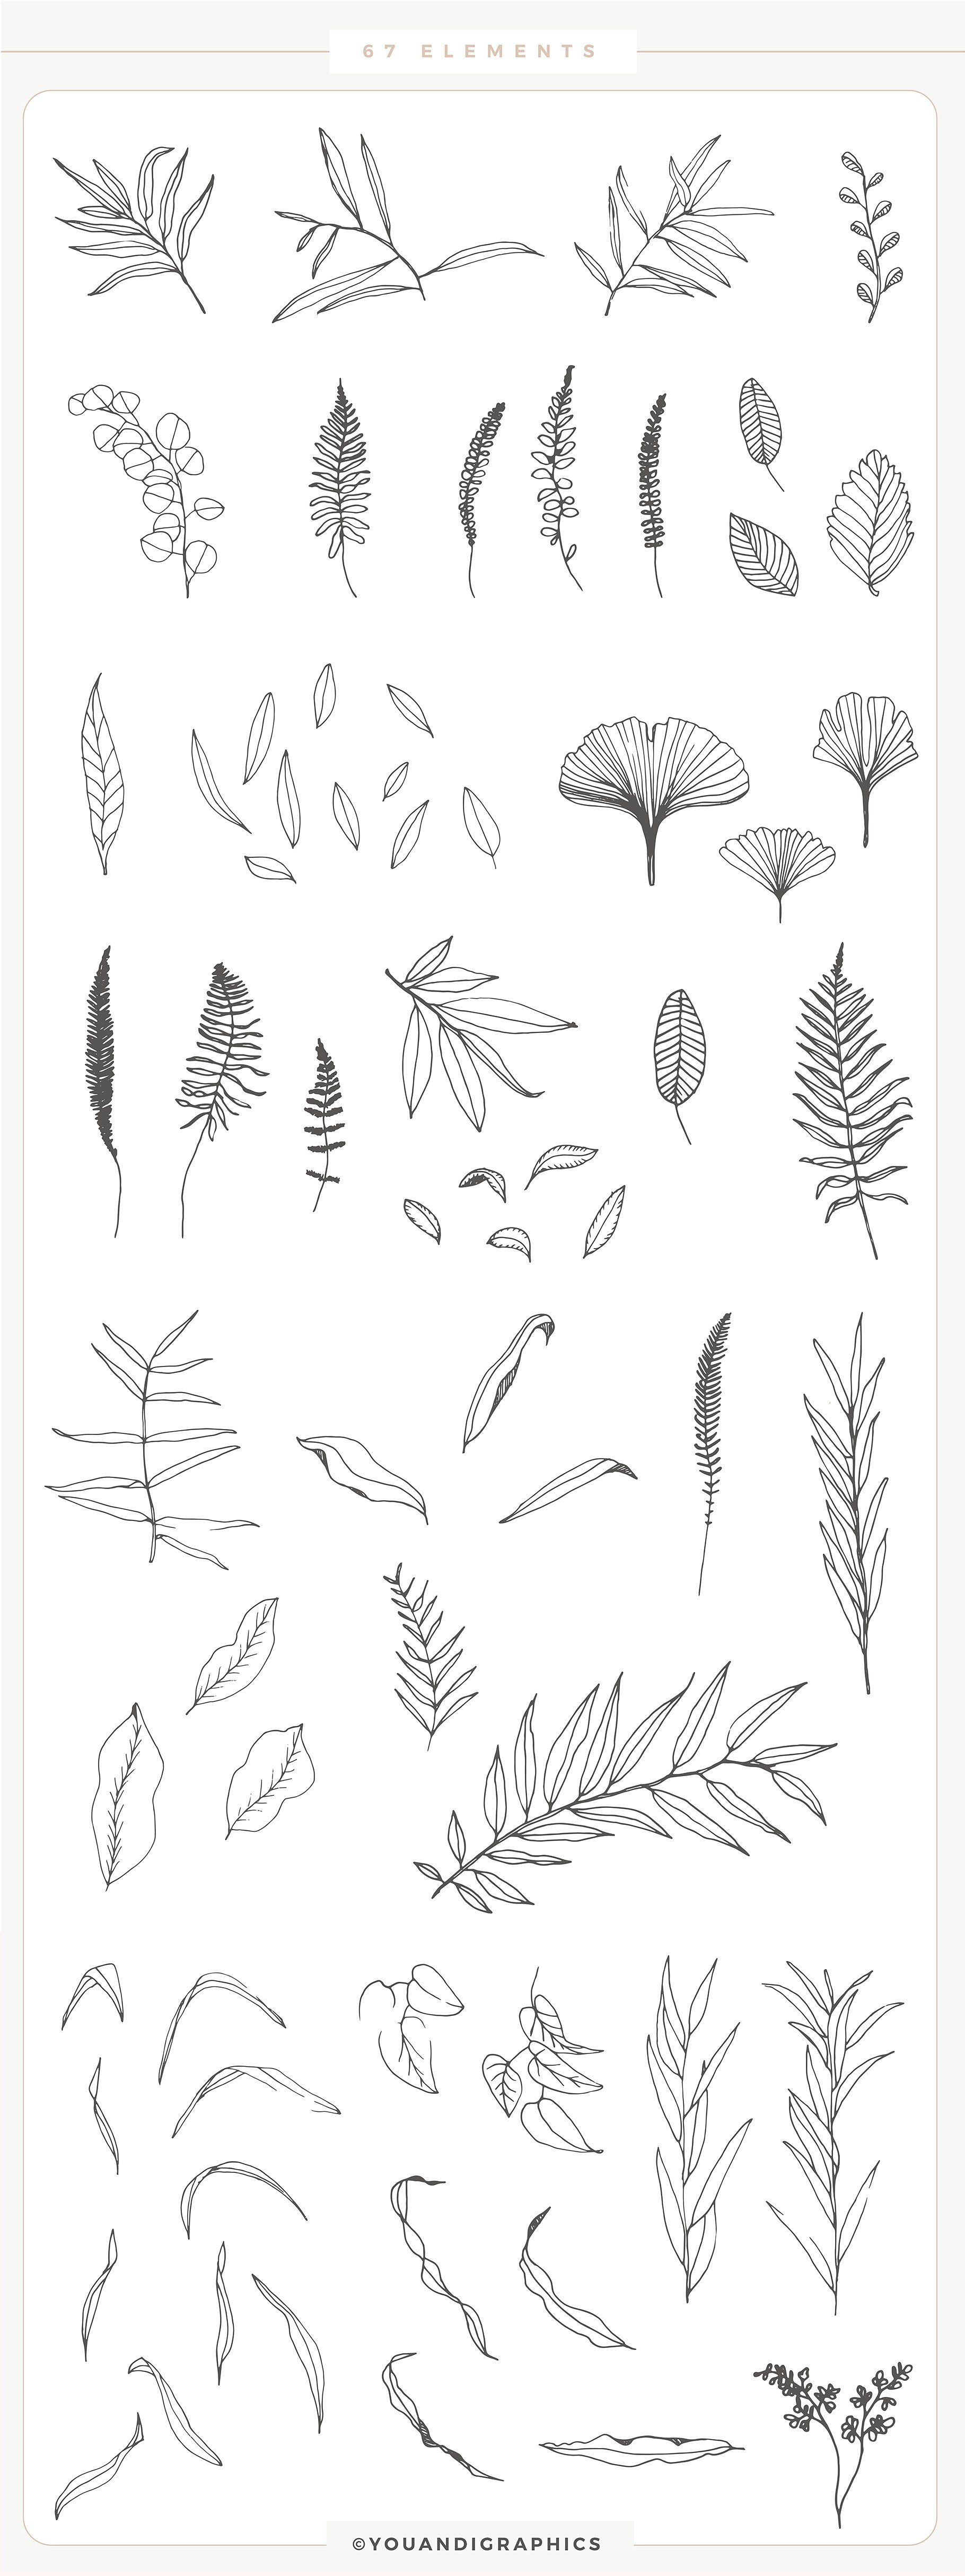 Romantic Leaves Collection by Youandigraphics on @creativemarket #romanceornot?